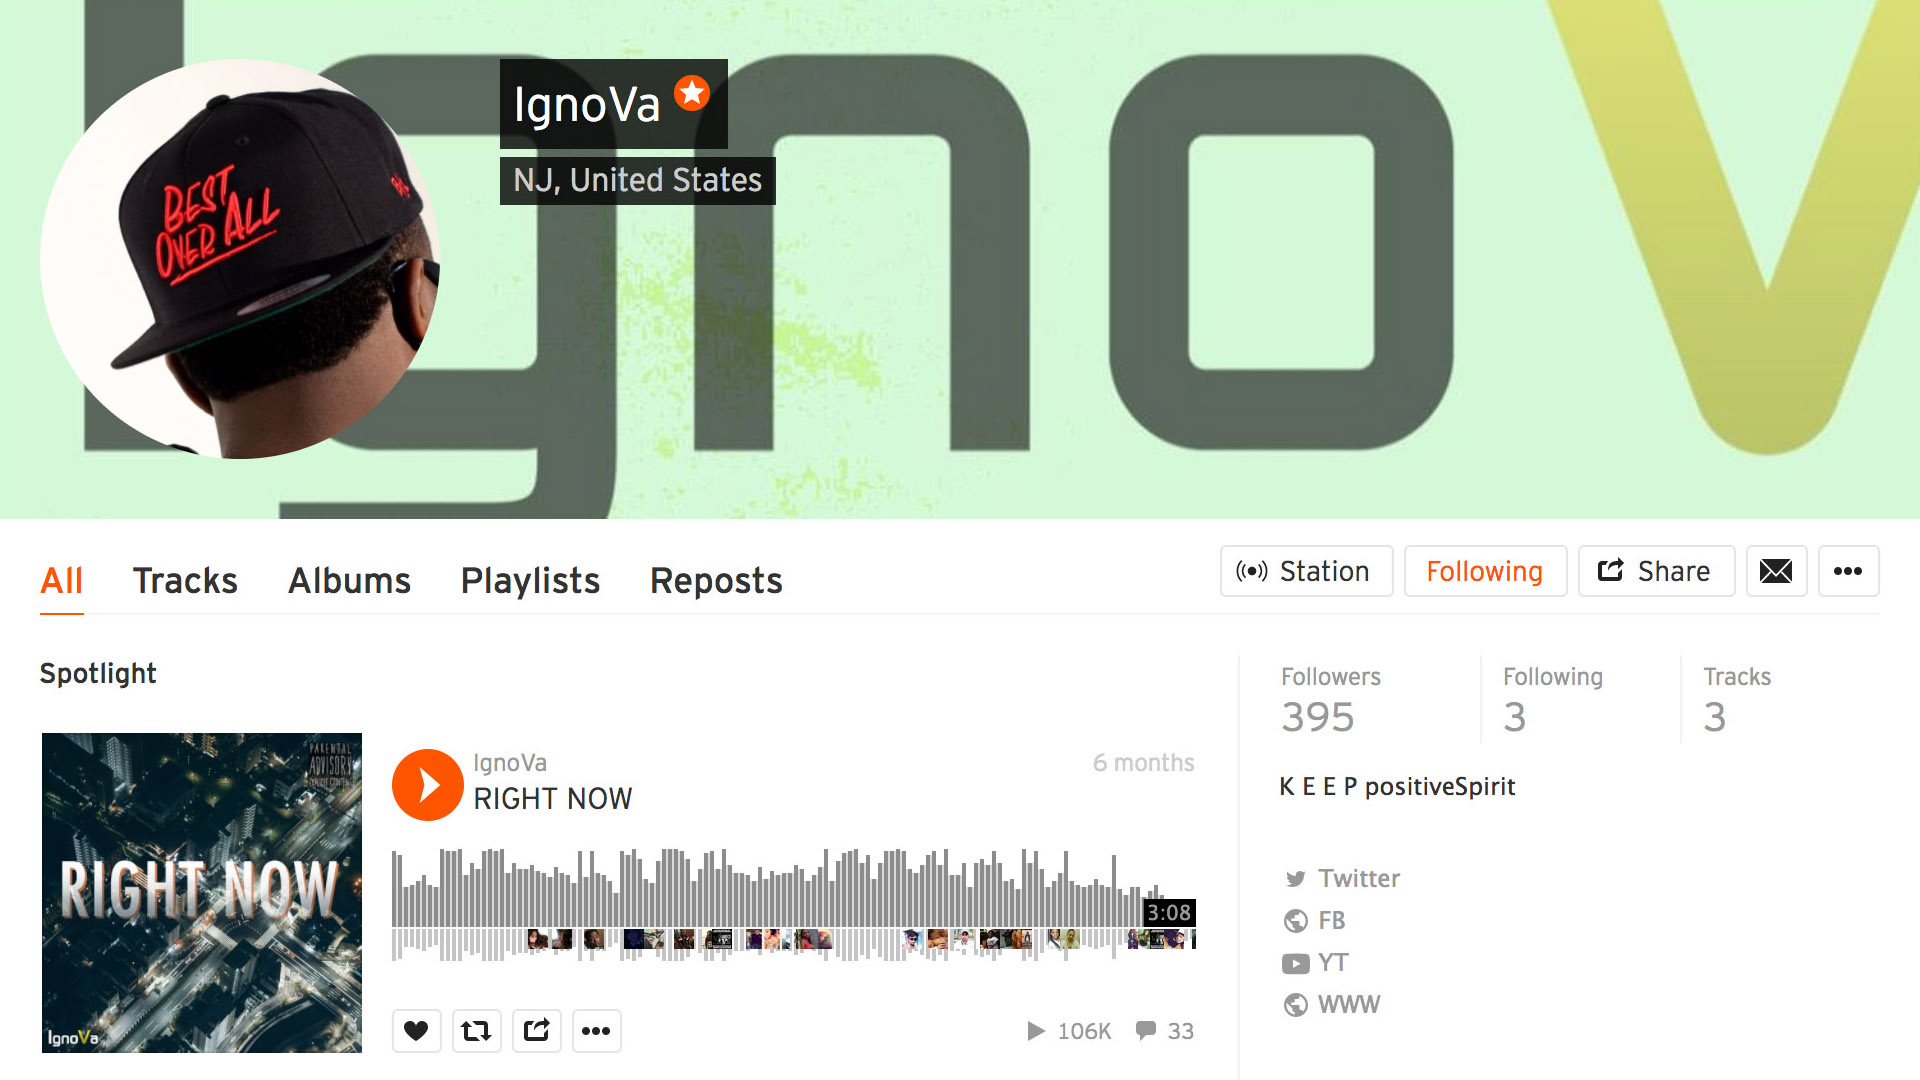 soundcloud.com/ignova